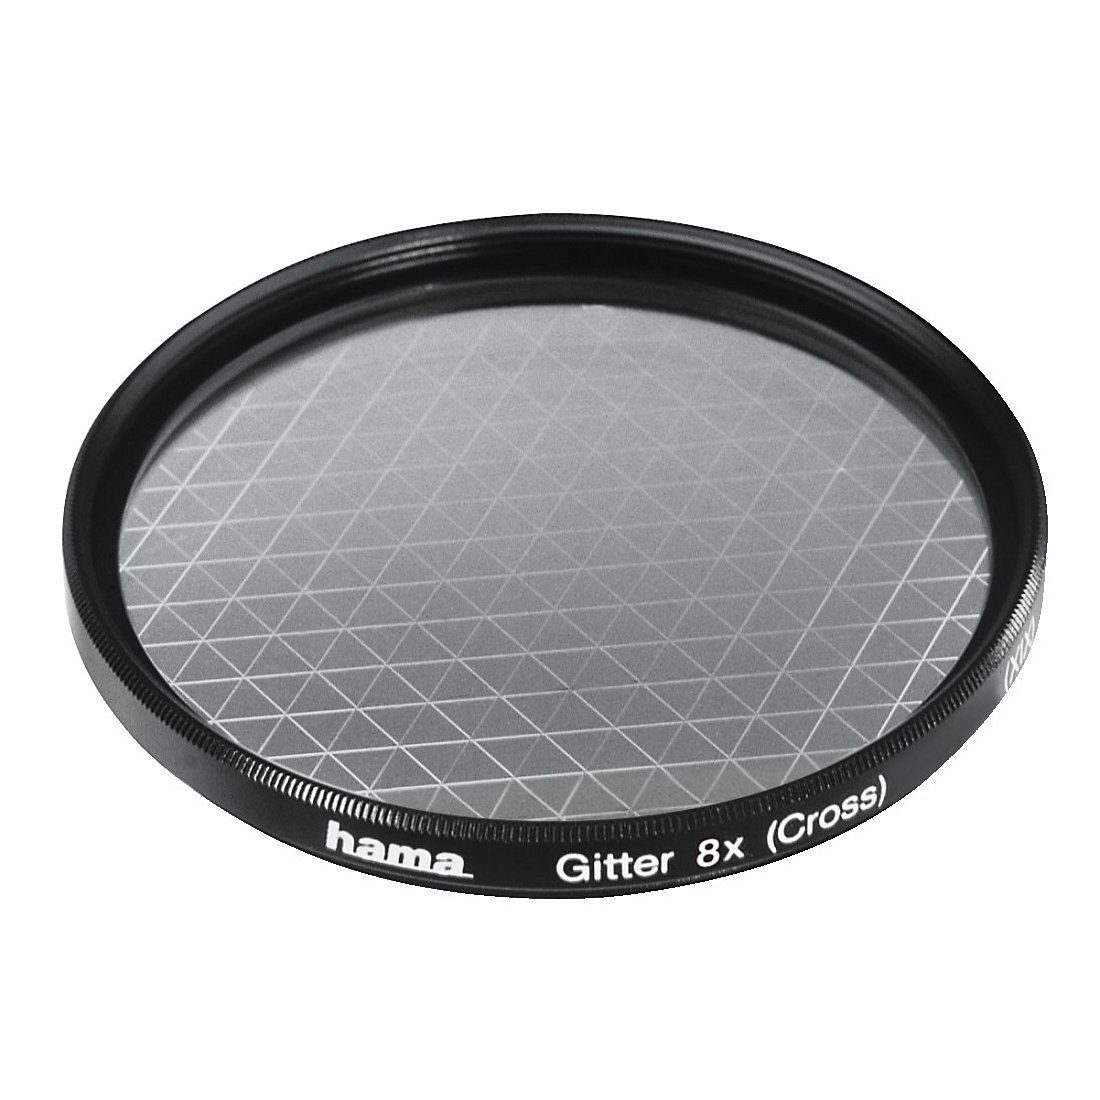 Hama Effekt-Filter, Gitter, 8x, 58,0 mm